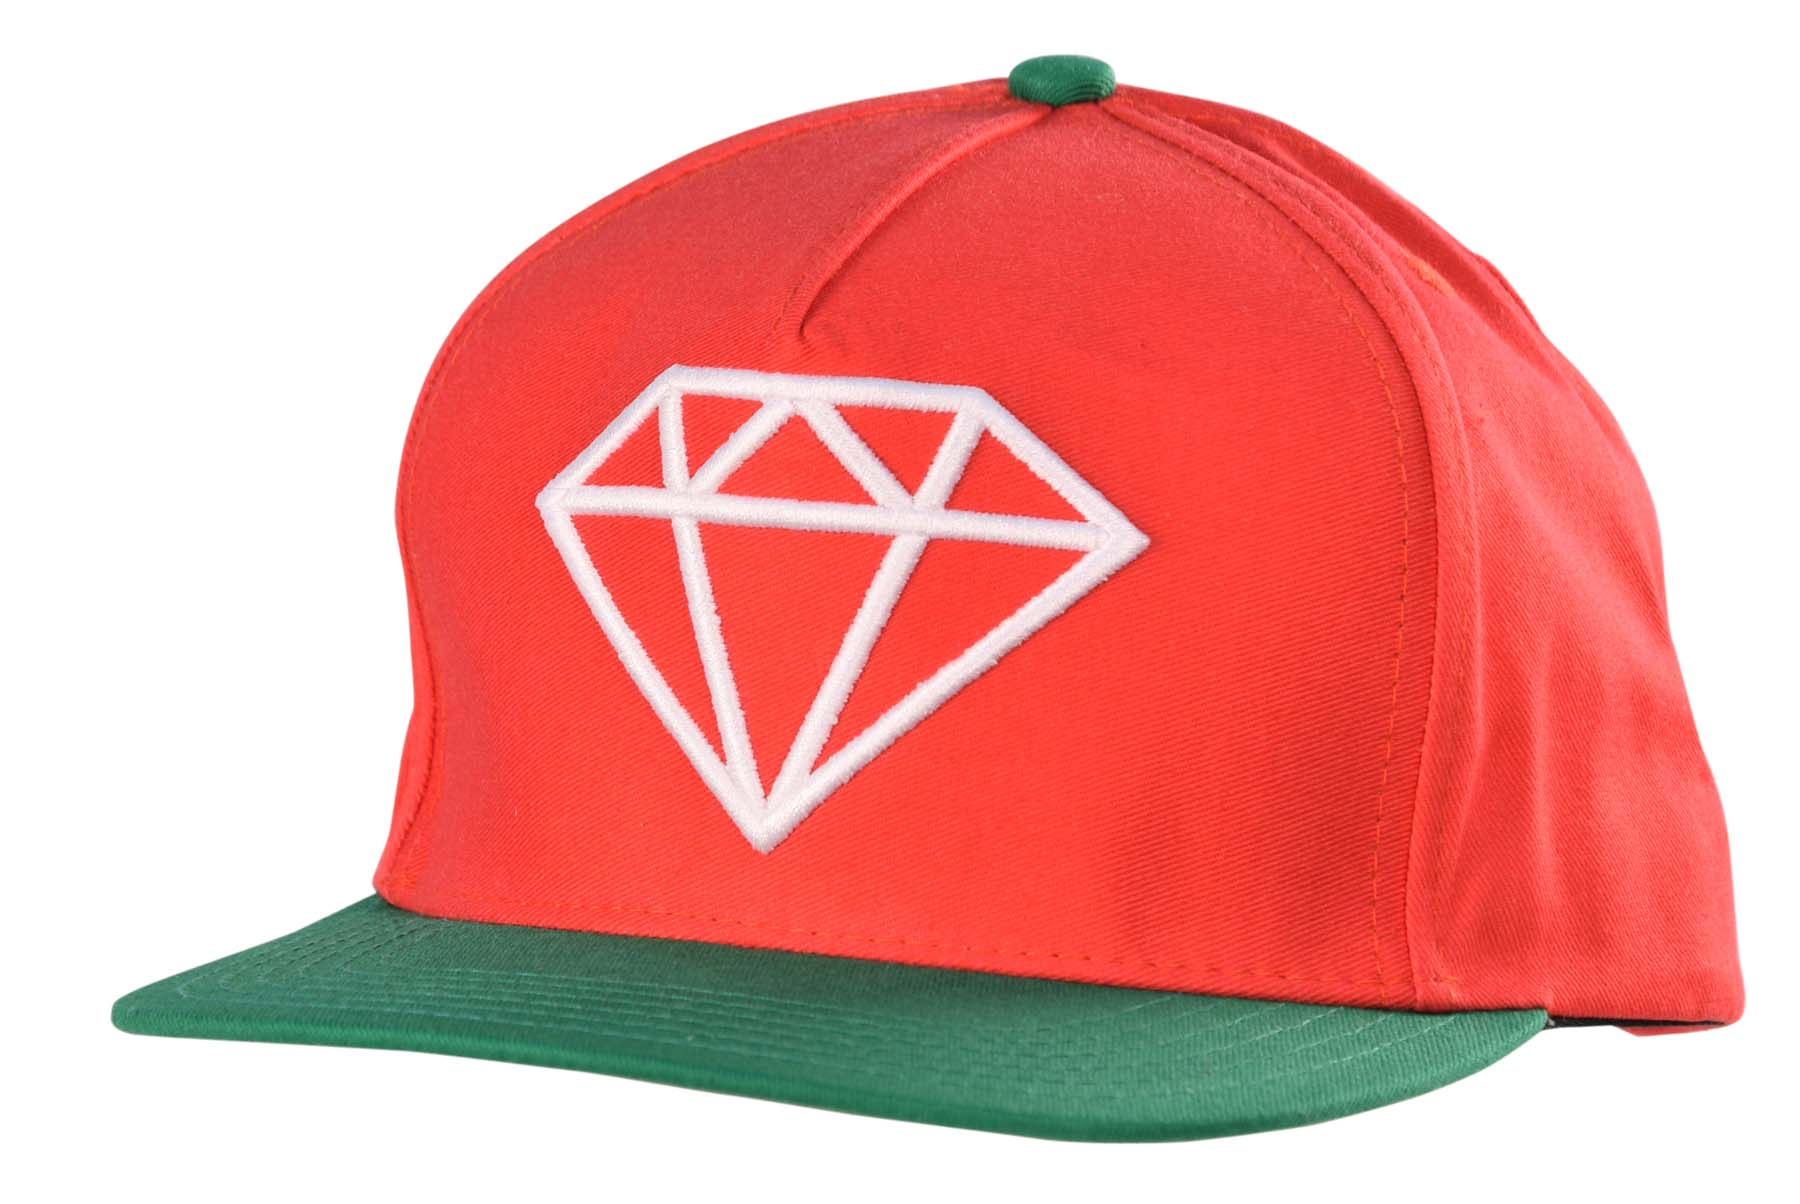 Details about Diamond Supply Co. Rock Logo Snapback Hat Cap-Green/Red